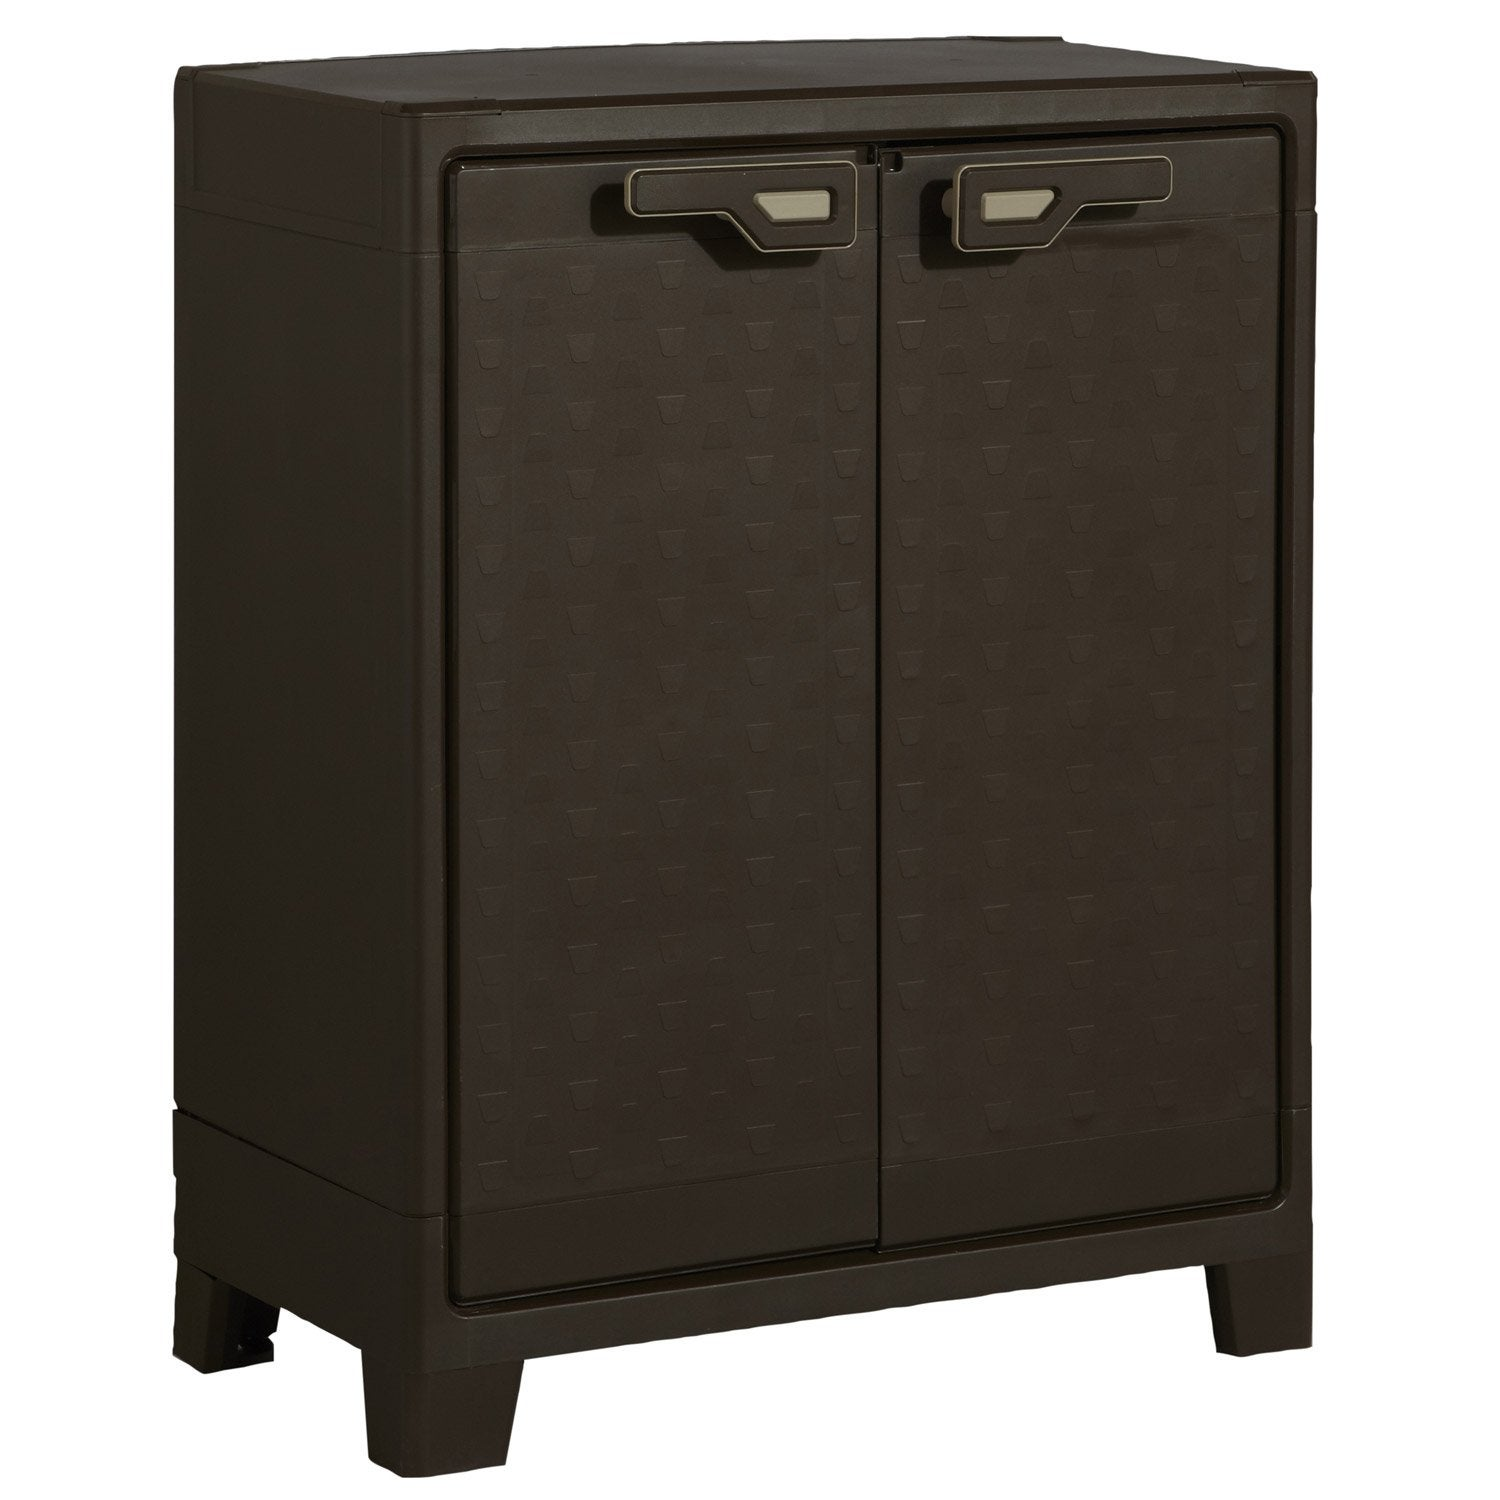 armoire de jardin en r sine titan leroy merlin. Black Bedroom Furniture Sets. Home Design Ideas